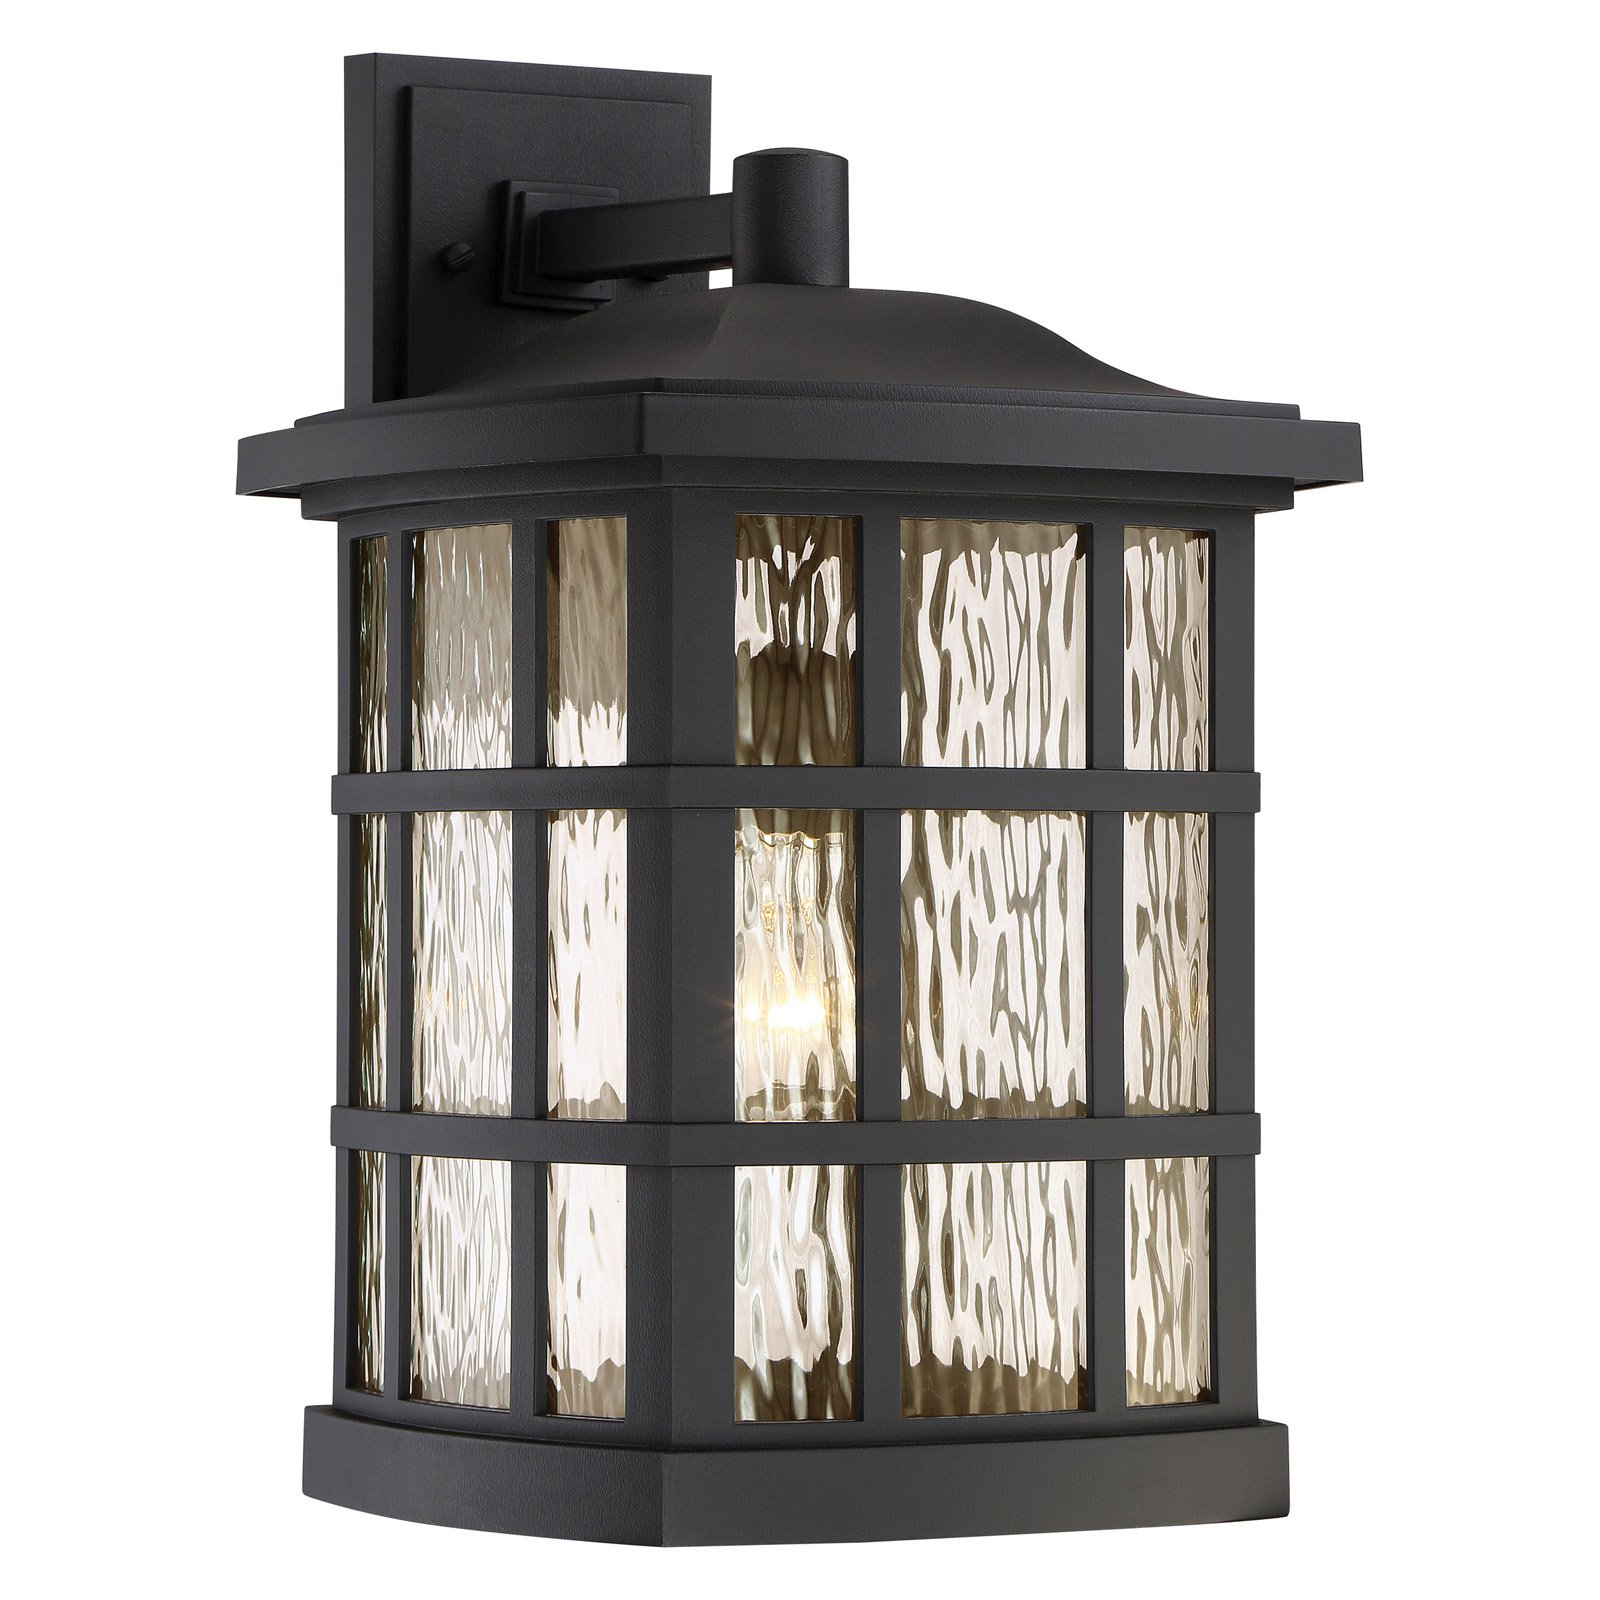 Quoizel Stonington SNN8411 Outdoor Wall Sconce